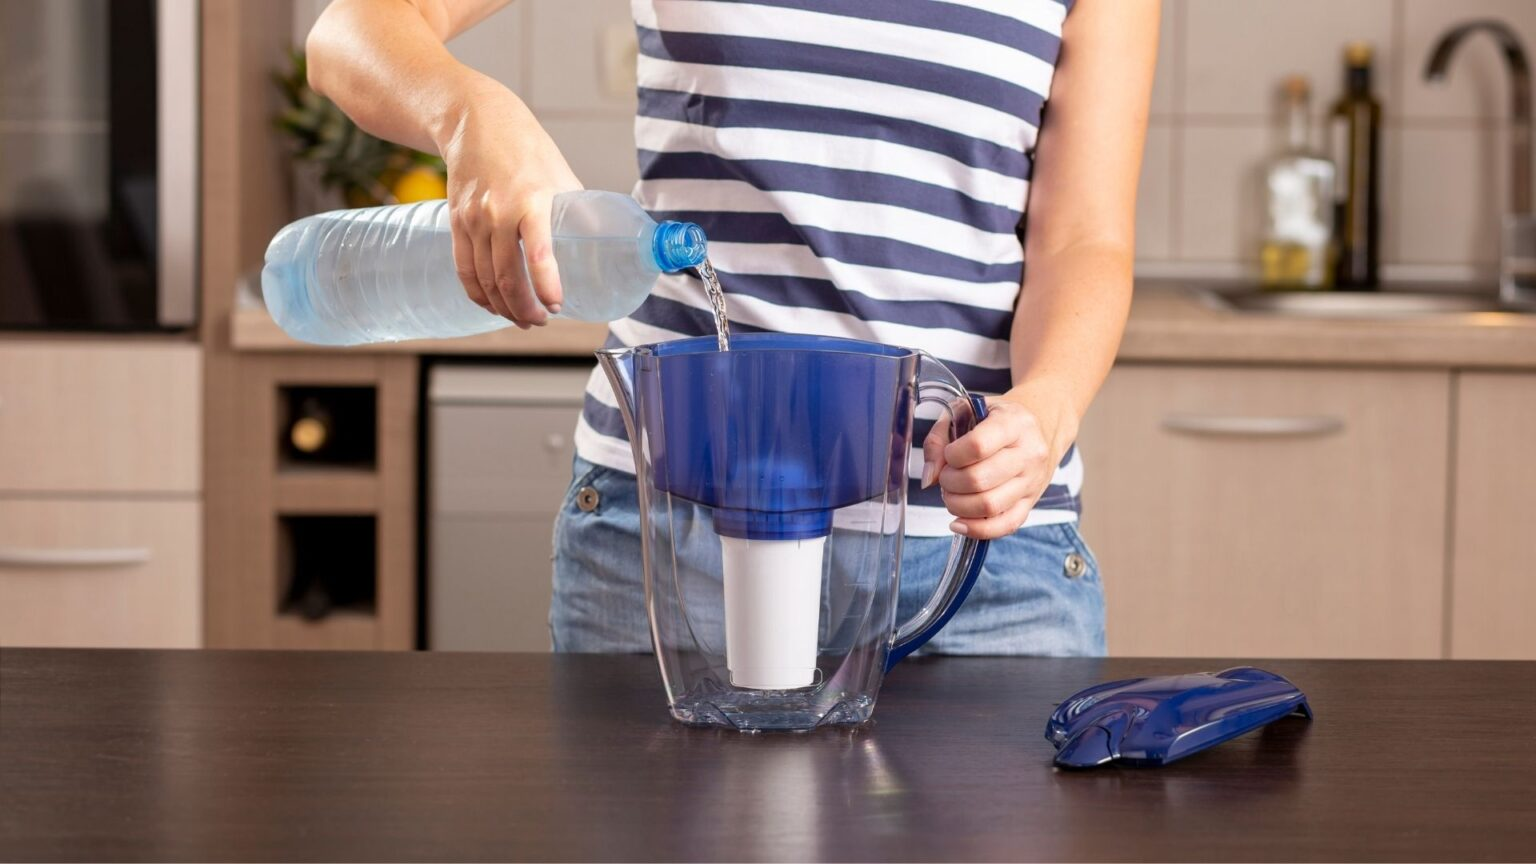 Guide to Buying the Best Water Pitcher Filters